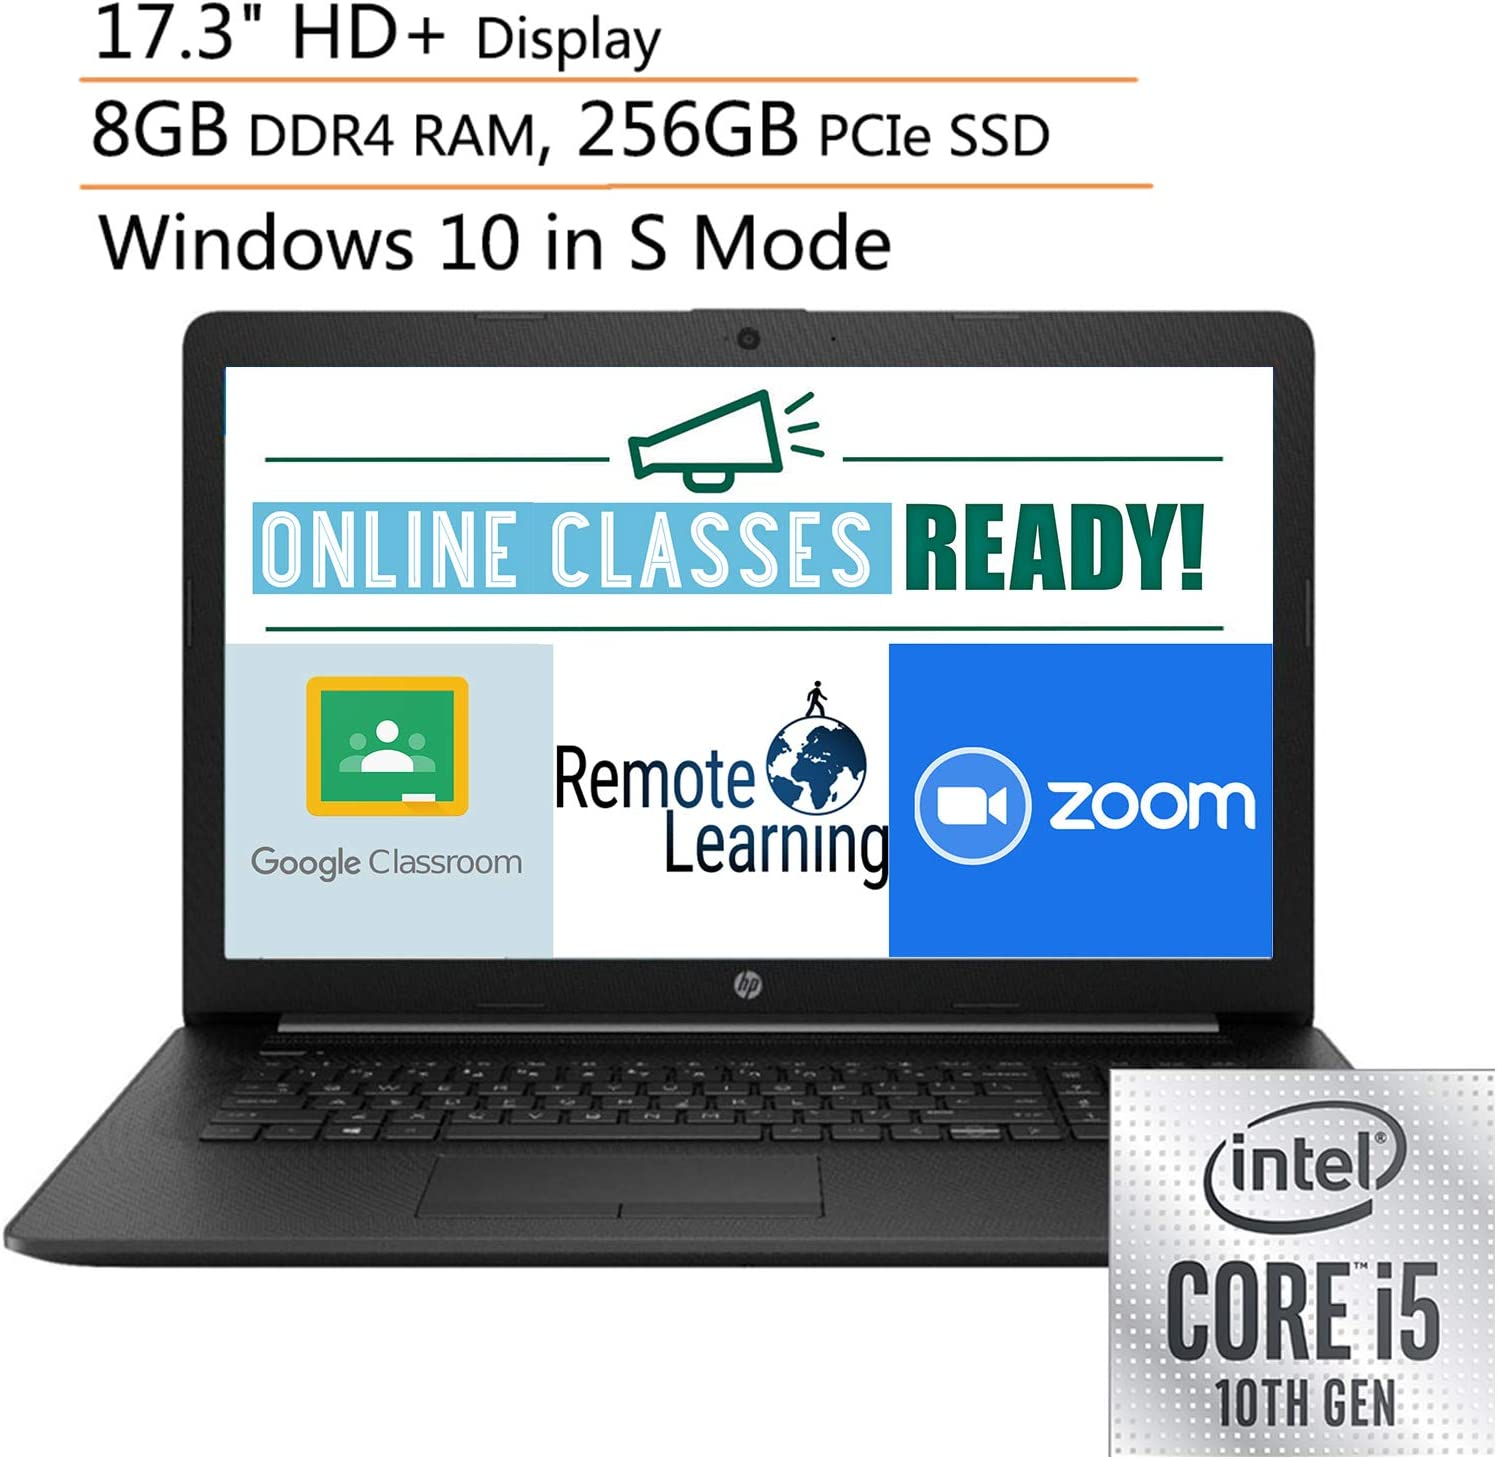 "2020 HP 17 17.3"" HD+ Laptop Computer, 10th Gen Intel Quad-Core i5 1035G1 Up to 3.4GHz (Beats i7-7500u), 8GB DDR4 RAM, 256GB PCIe SSD, DVDRW, Webcam, Windows 10, Ipuzzle Mouse Pad, Online Class Ready"